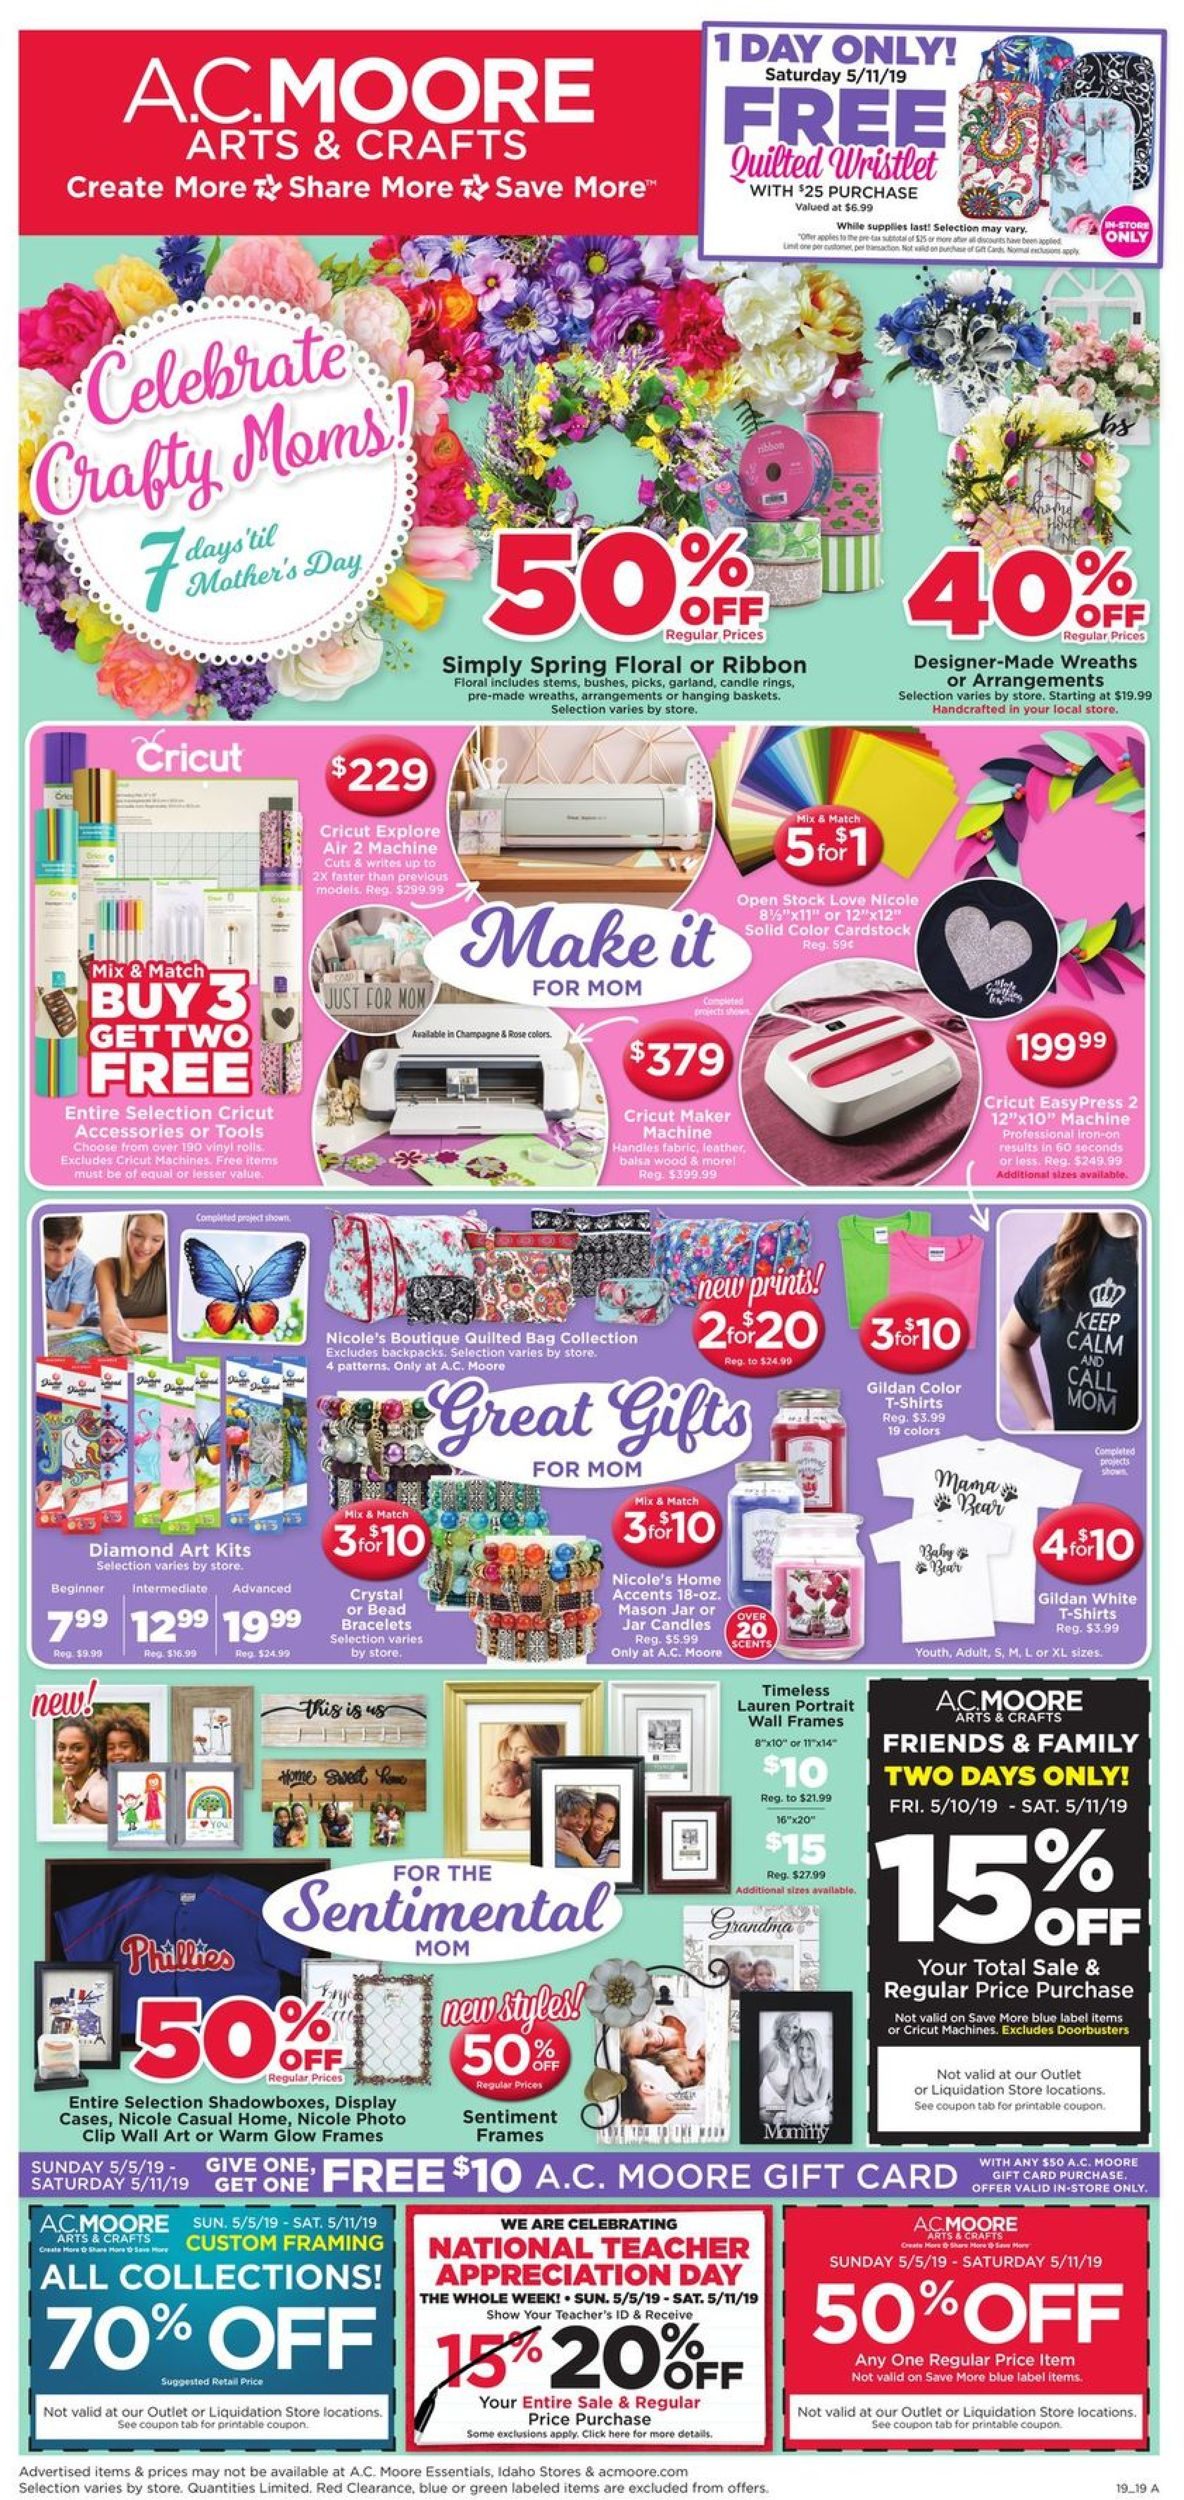 A.C. Moore Current Weekly Ad 05/05